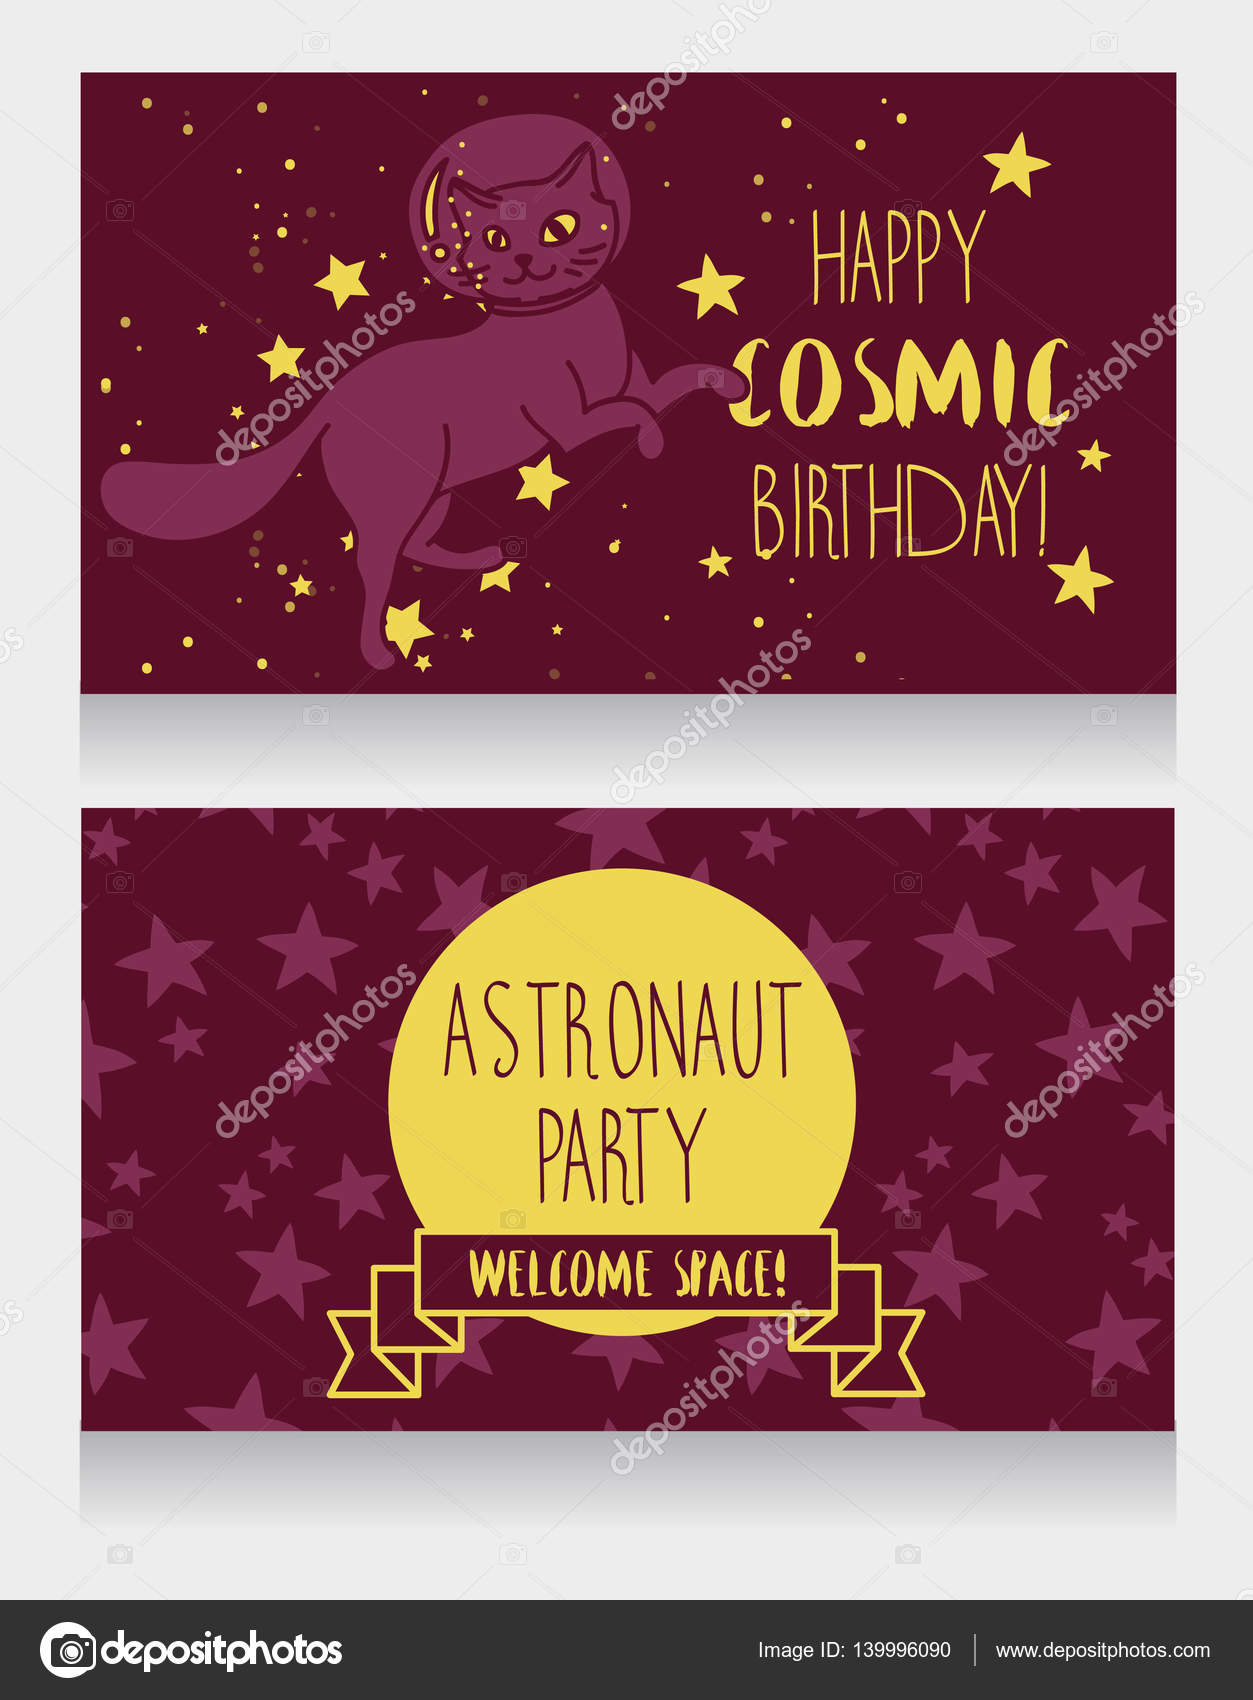 funny invitation cards for cosmic birthday party — Stock Vector ...